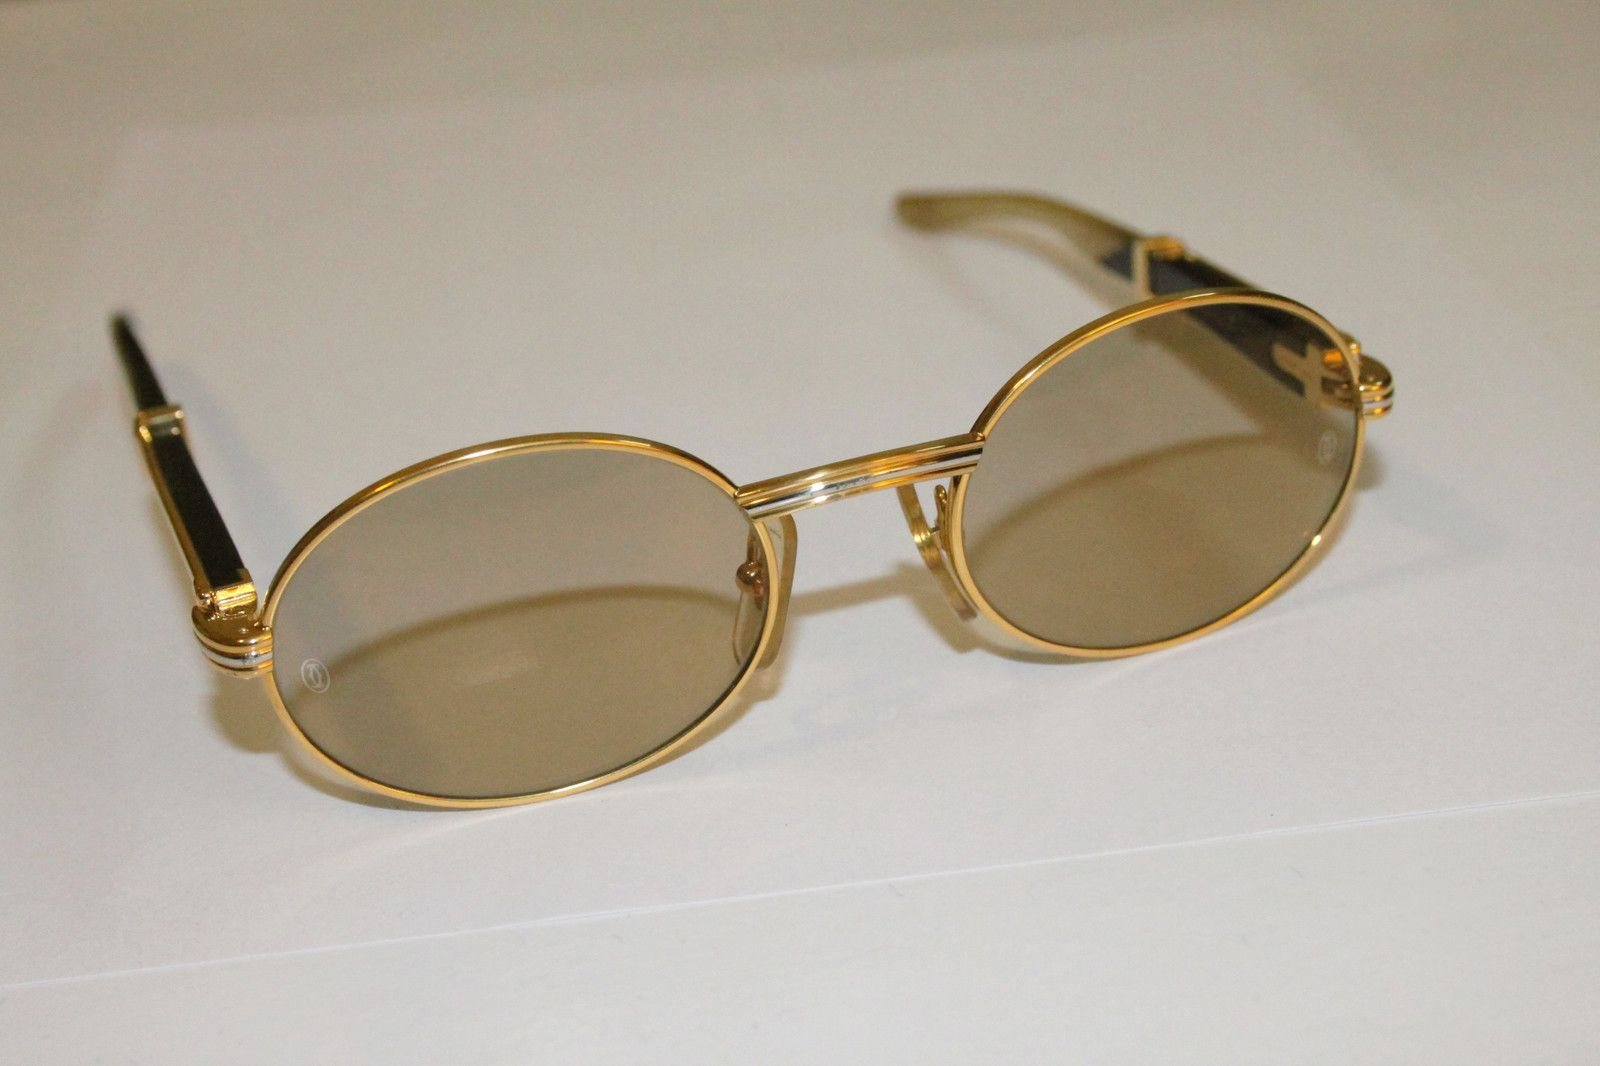 Cartier Gold And Wood Sunglasses Natural In